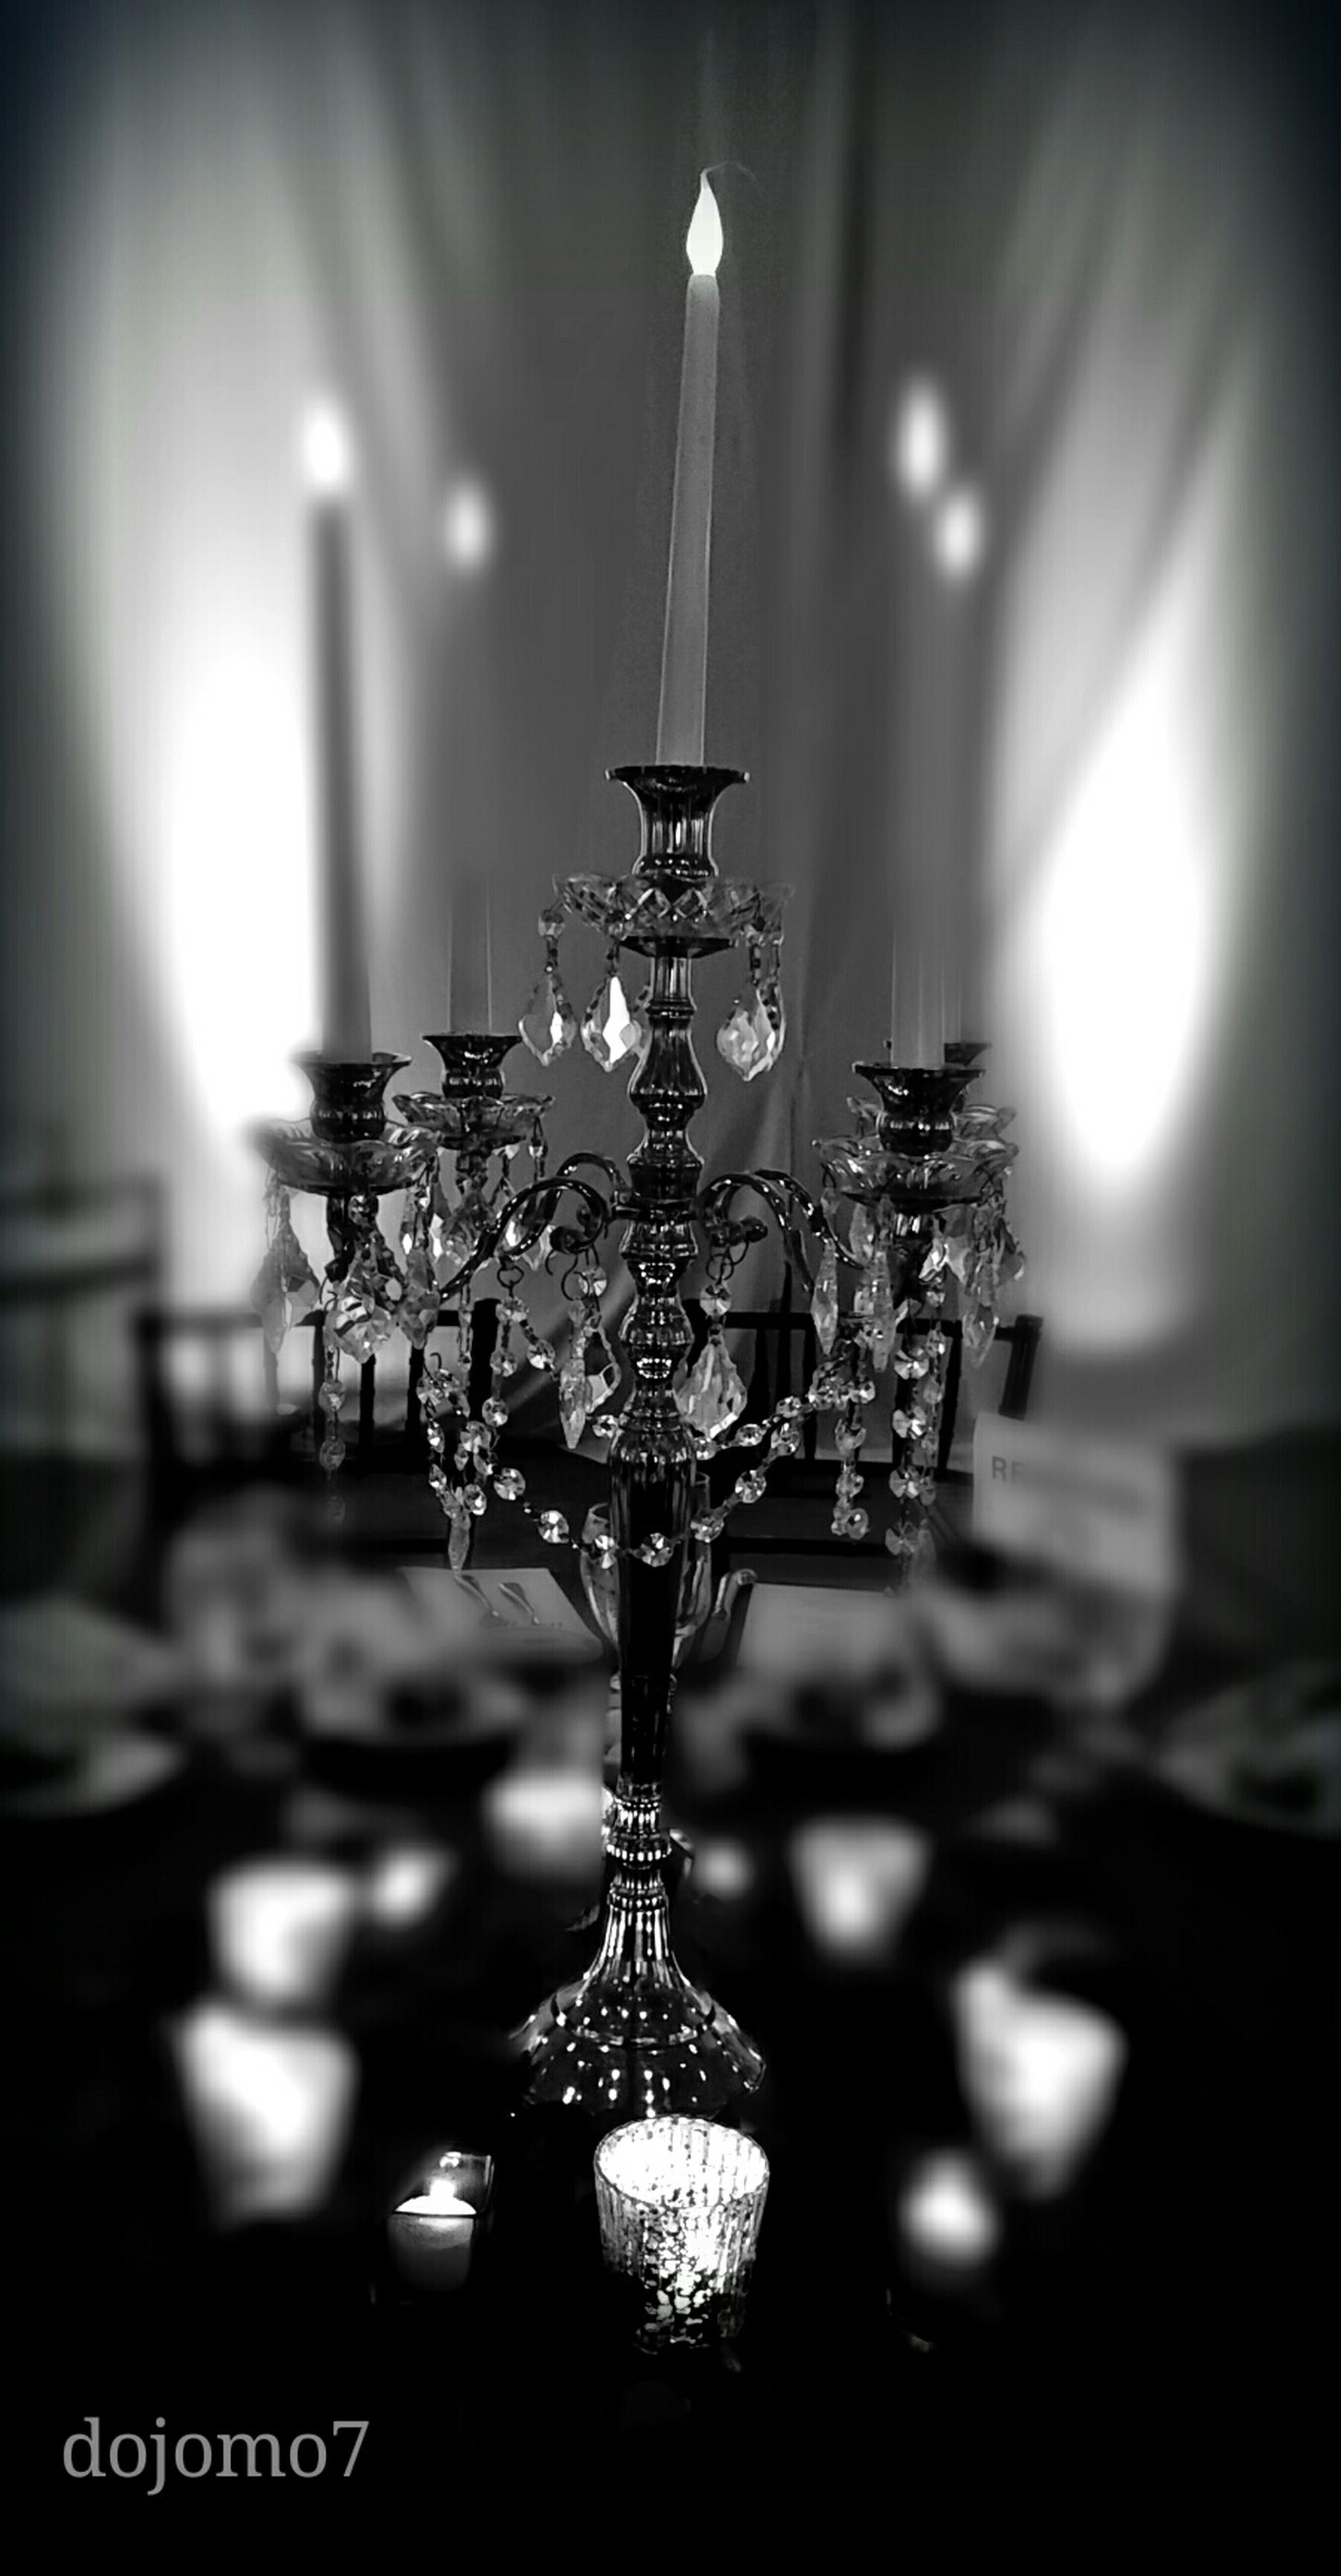 illuminated, lighting equipment, indoors, hanging, chandelier, decoration, electricity, night, focus on foreground, close-up, decor, ceiling, low angle view, electric light, electric lamp, glowing, light - natural phenomenon, no people, home interior, built structure